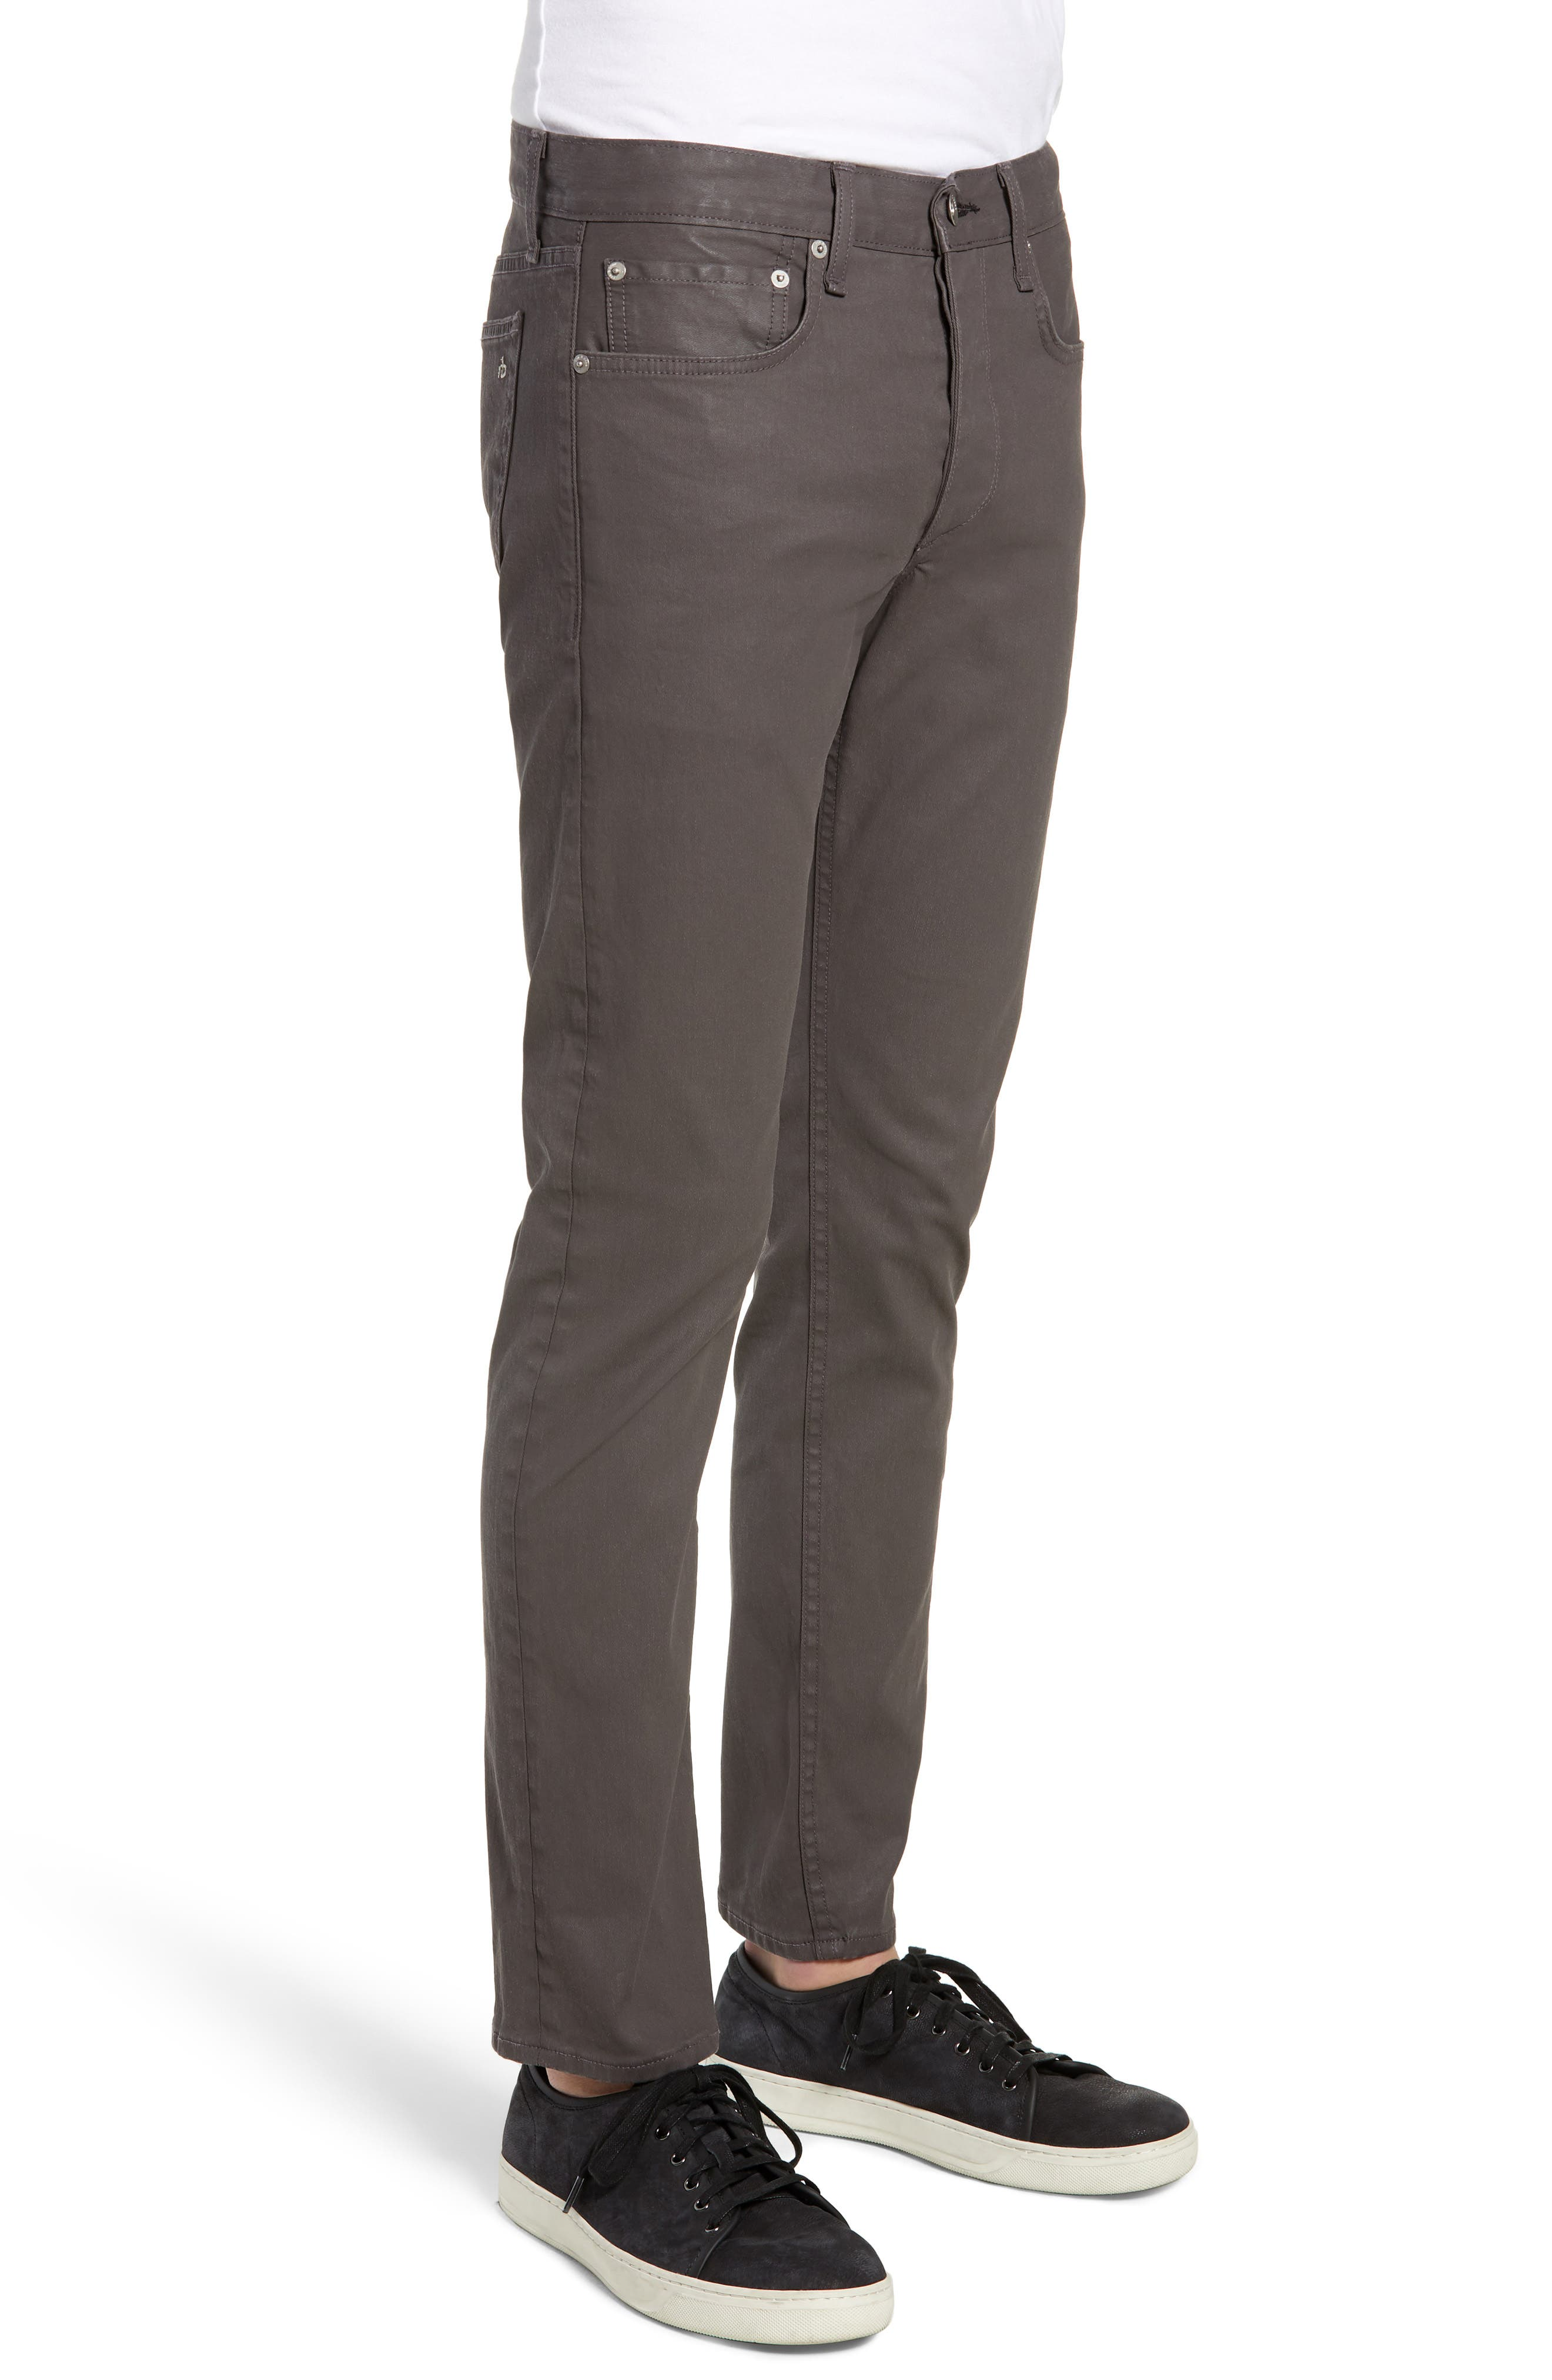 Fit 2 Slim Fit Pants,                             Alternate thumbnail 3, color,                             COATED CLAY